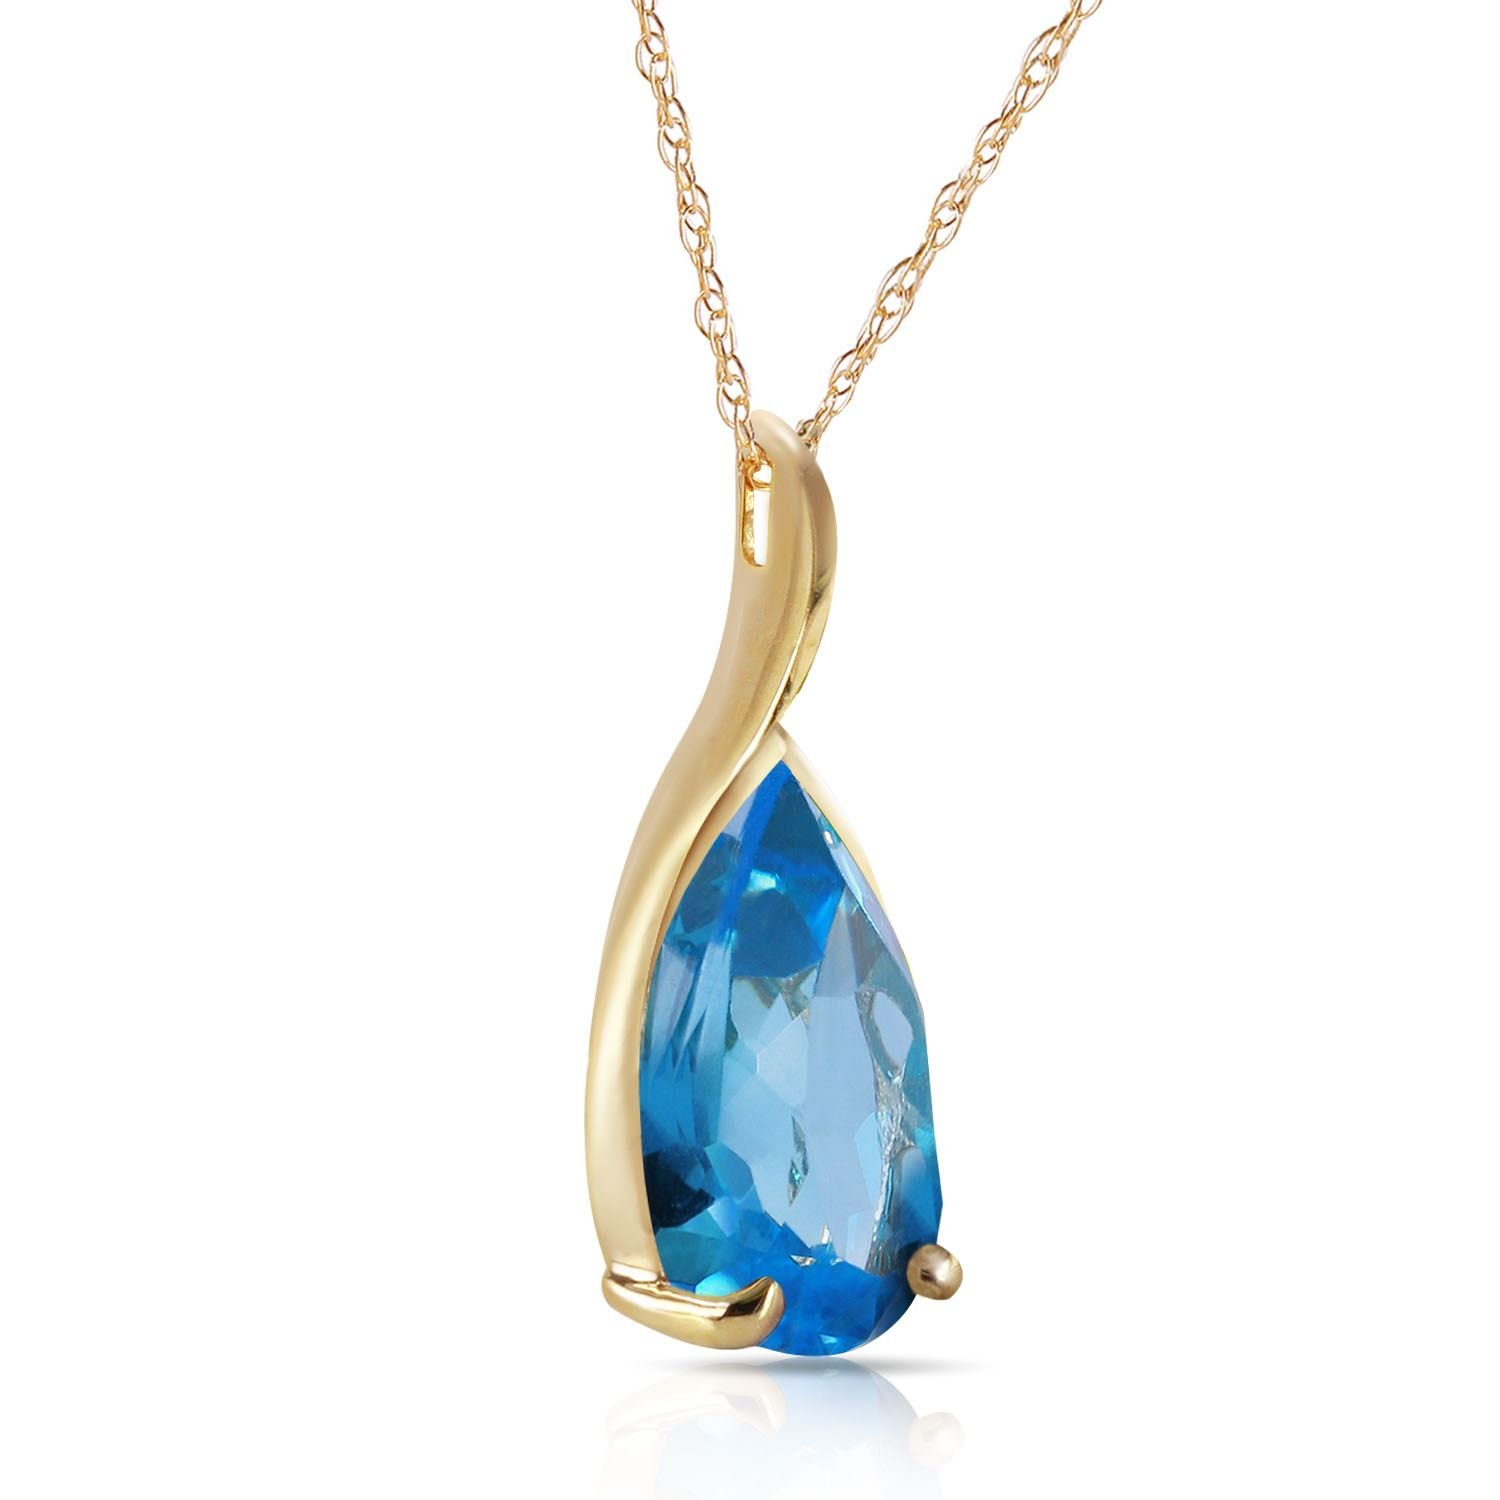 ALARRI 4.7 Carat 14K Solid Gold Love Sonnets Blue Topaz Necklace with 18 Inch Chain Length